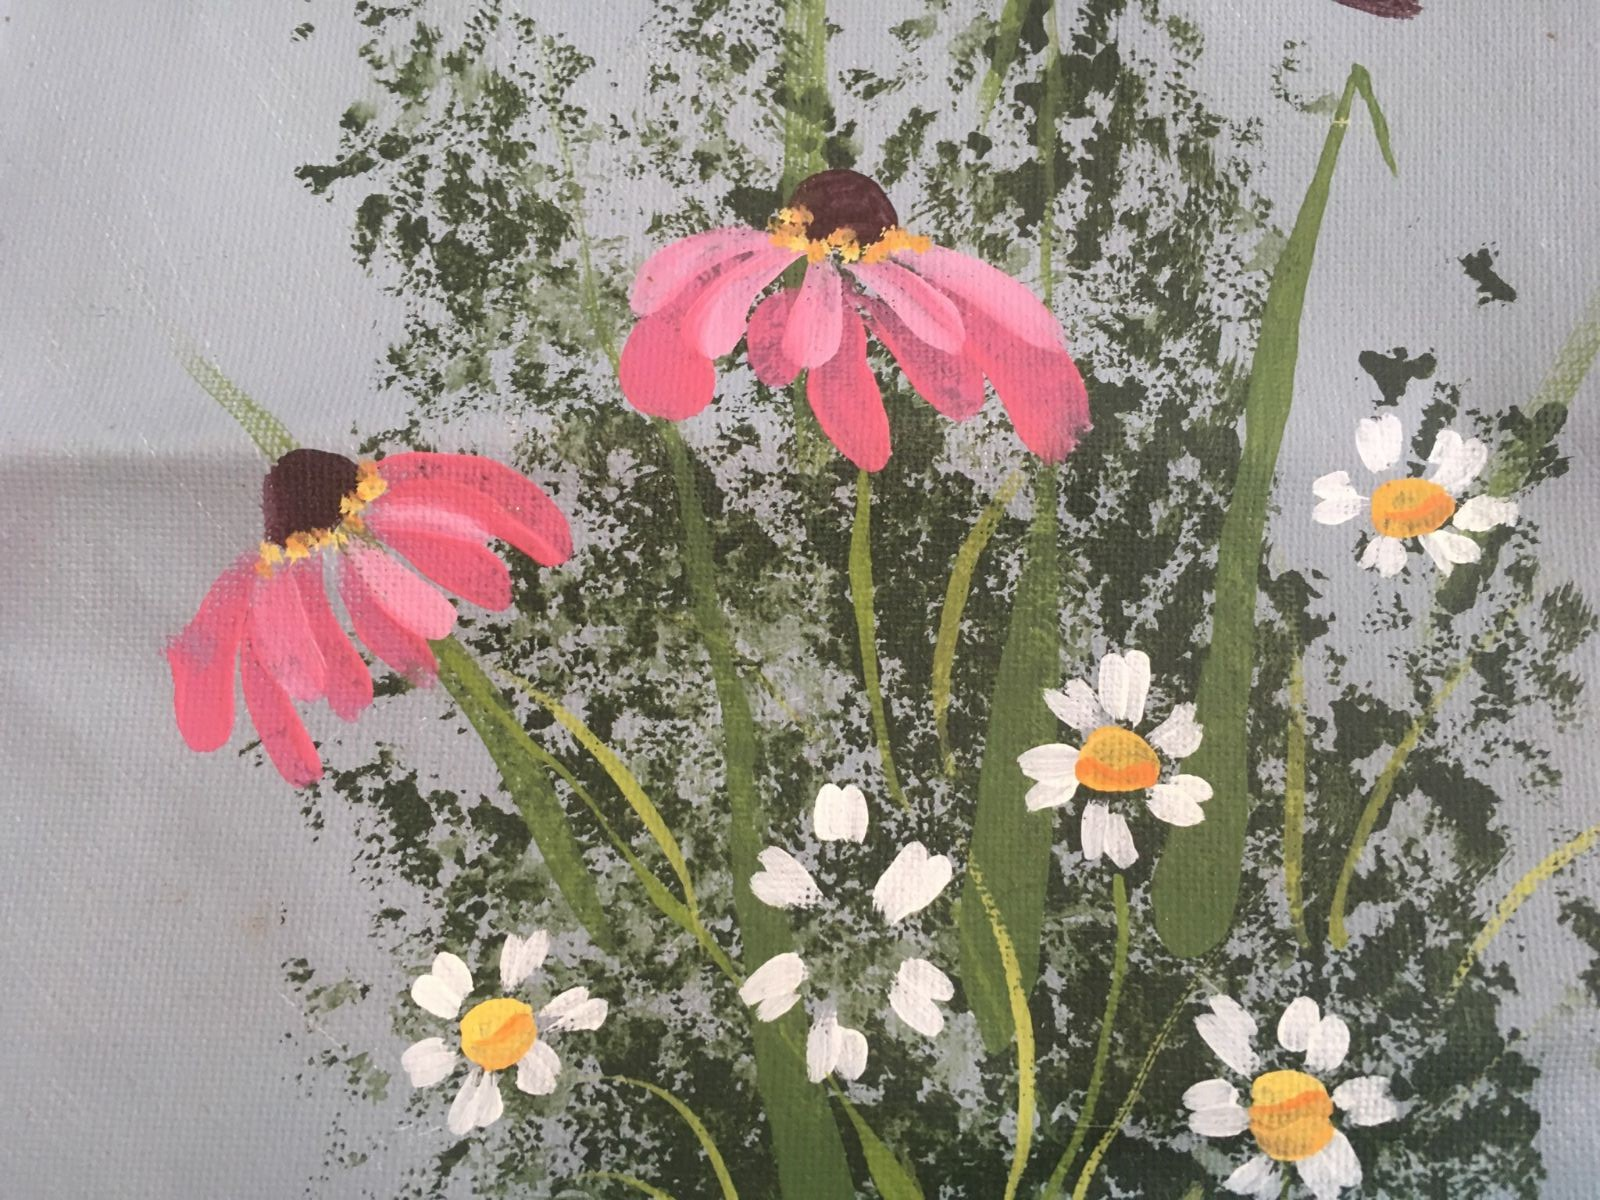 Flower Painting: Coneflowers and Daisies